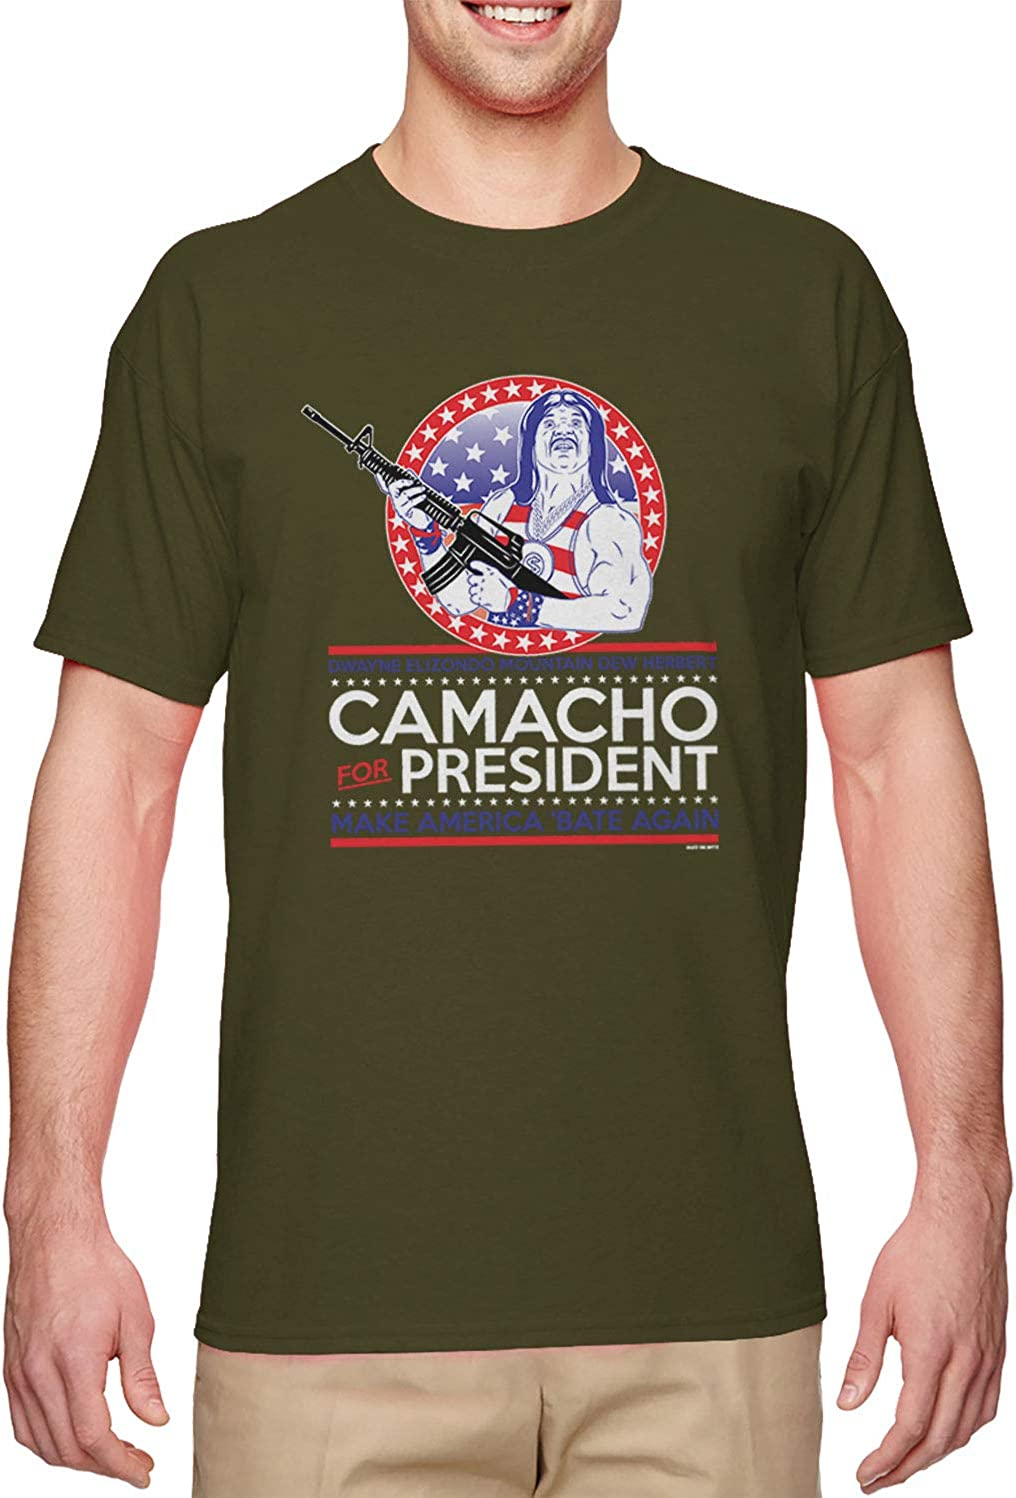 Haase Unlimited Camacho for President - Parody Funny Men's T-Shirt